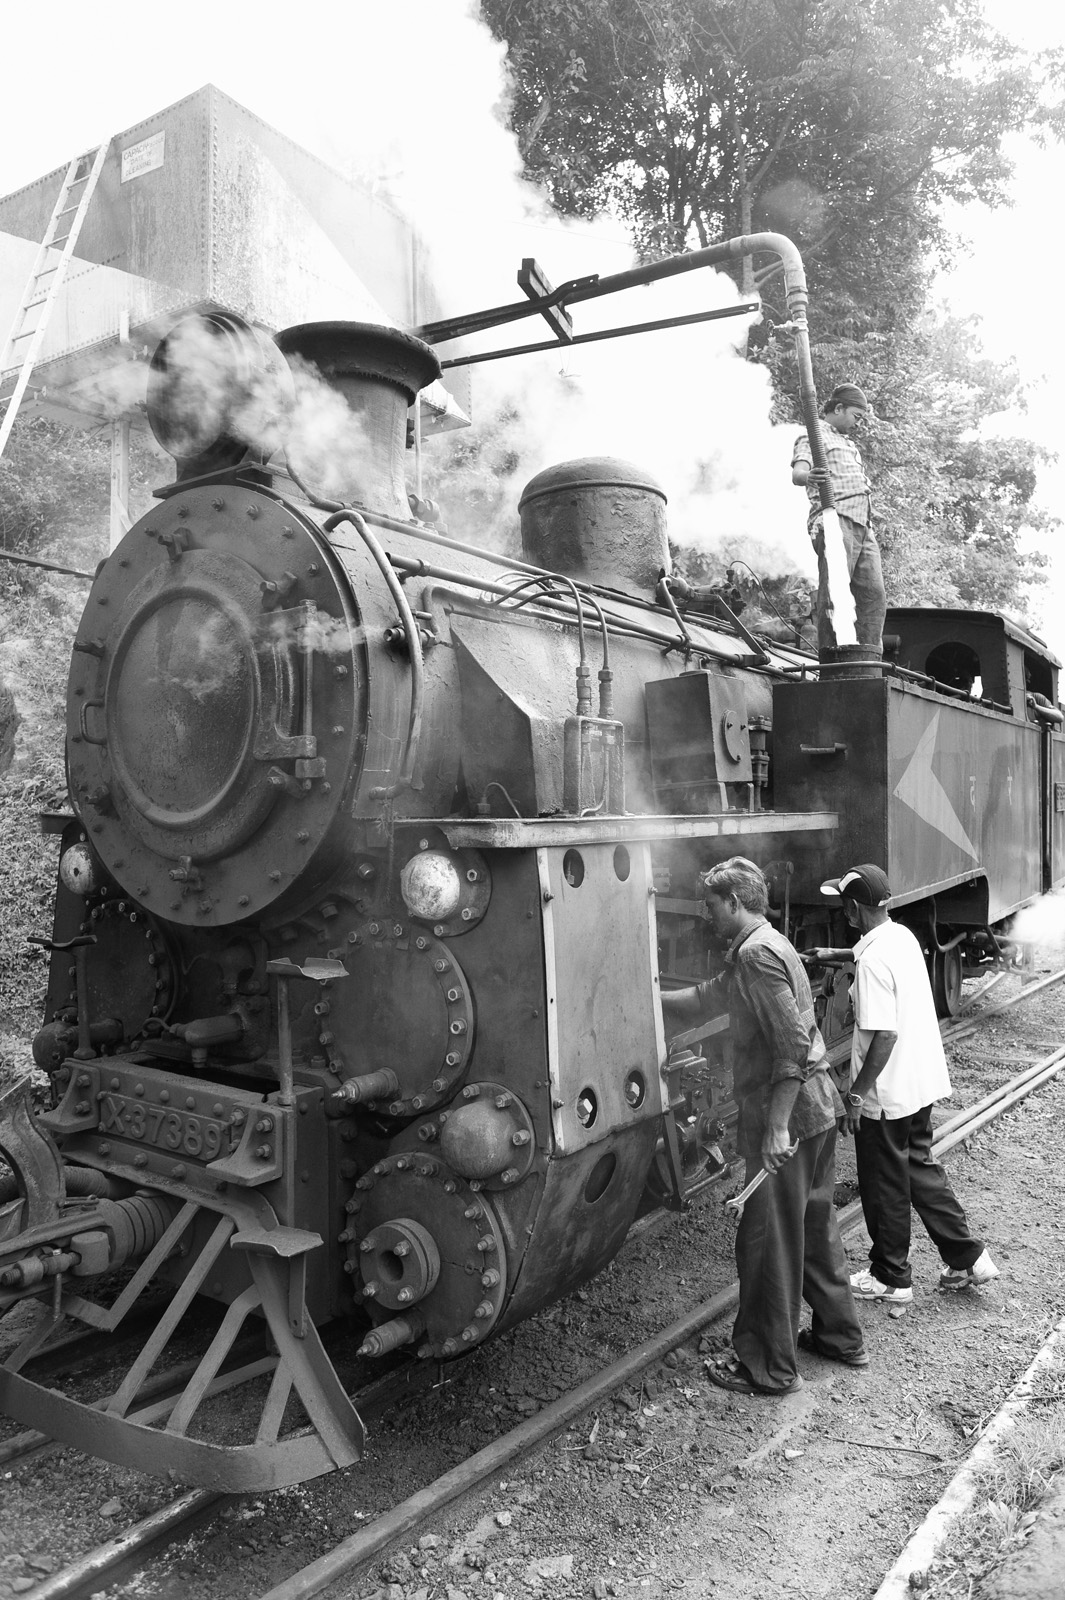 From the Nilgiri Mountain Railway, Tamil Nadu, India.